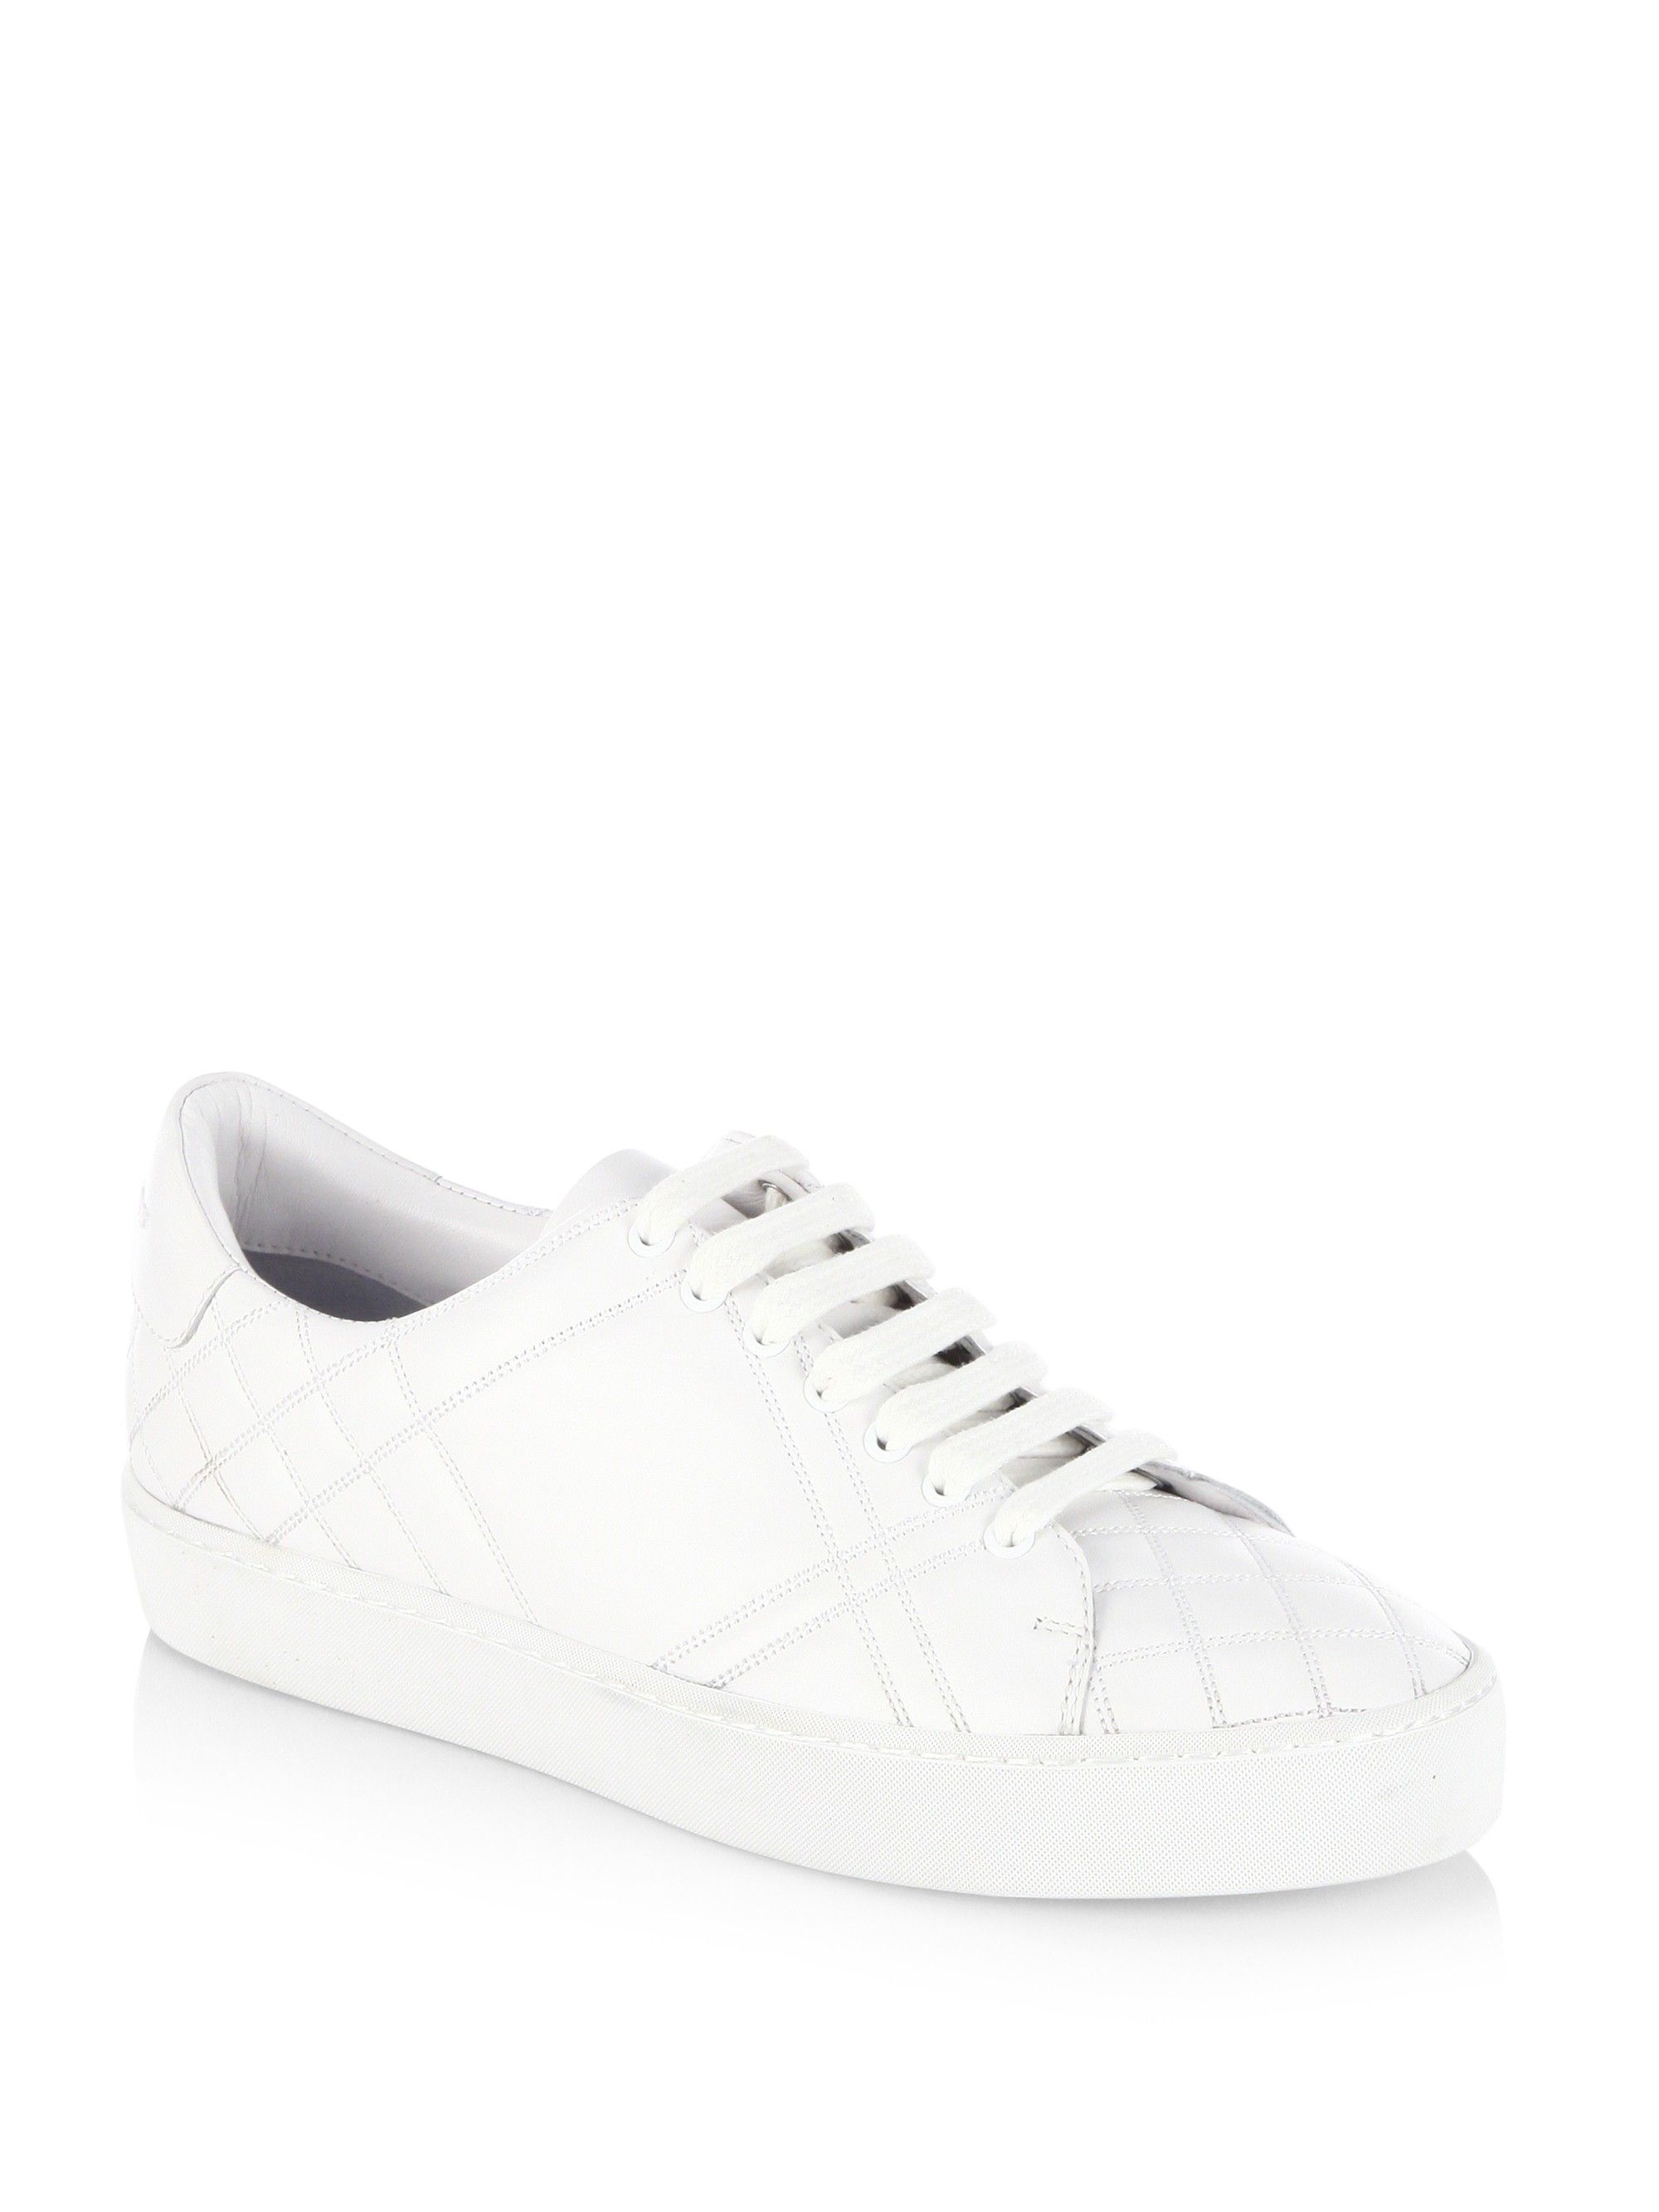 Westford Perforated Leather Low-top